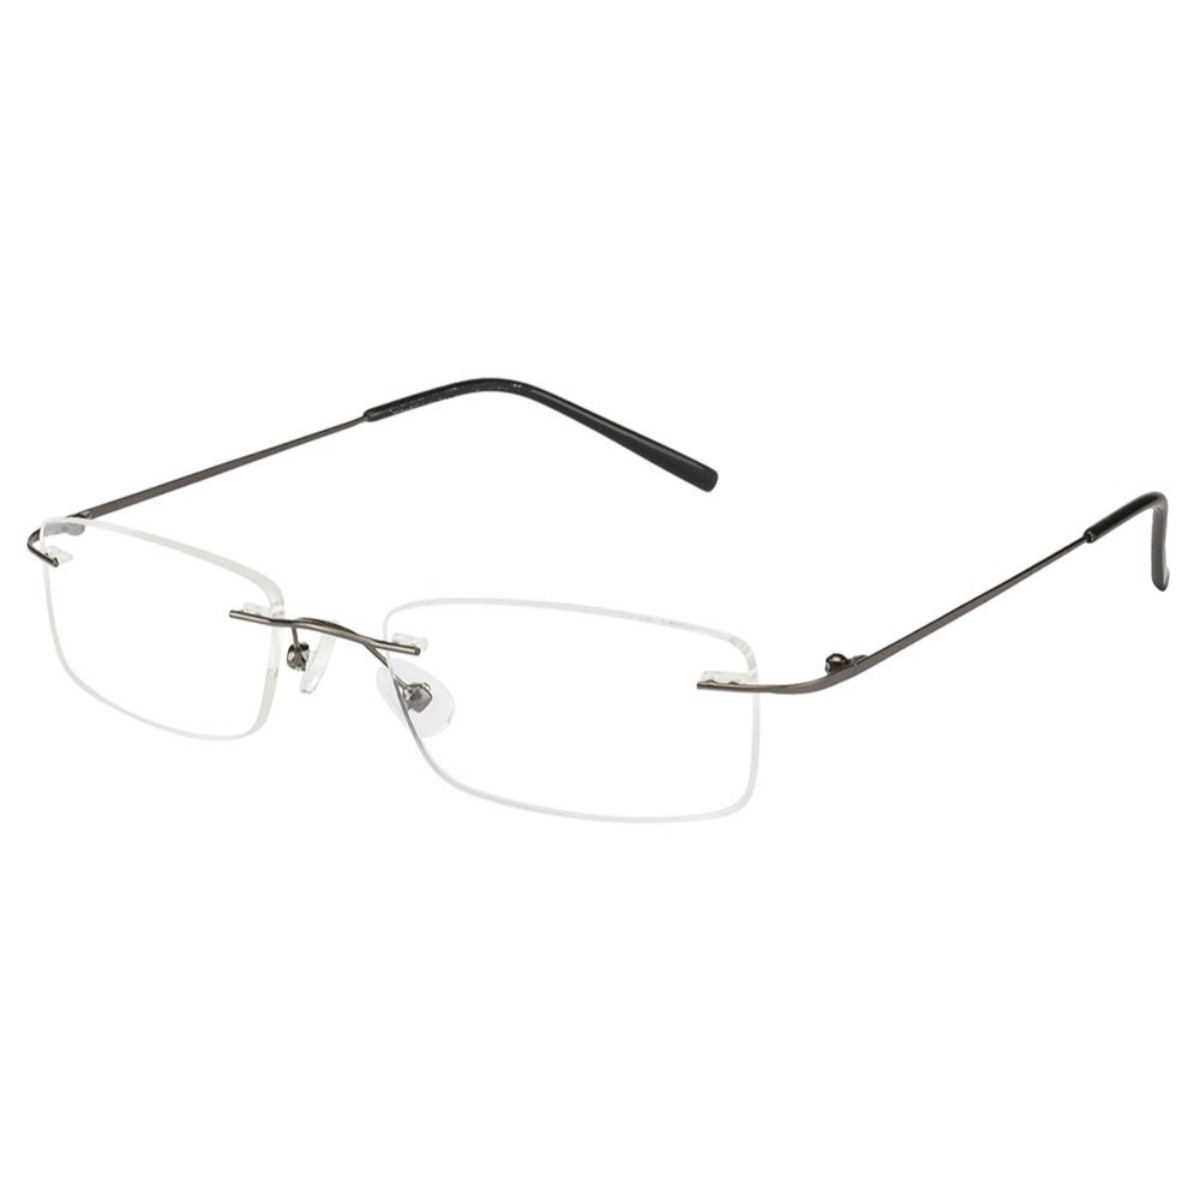 Gunmetal Rimless Computer Glasses with Anti Glare Coating